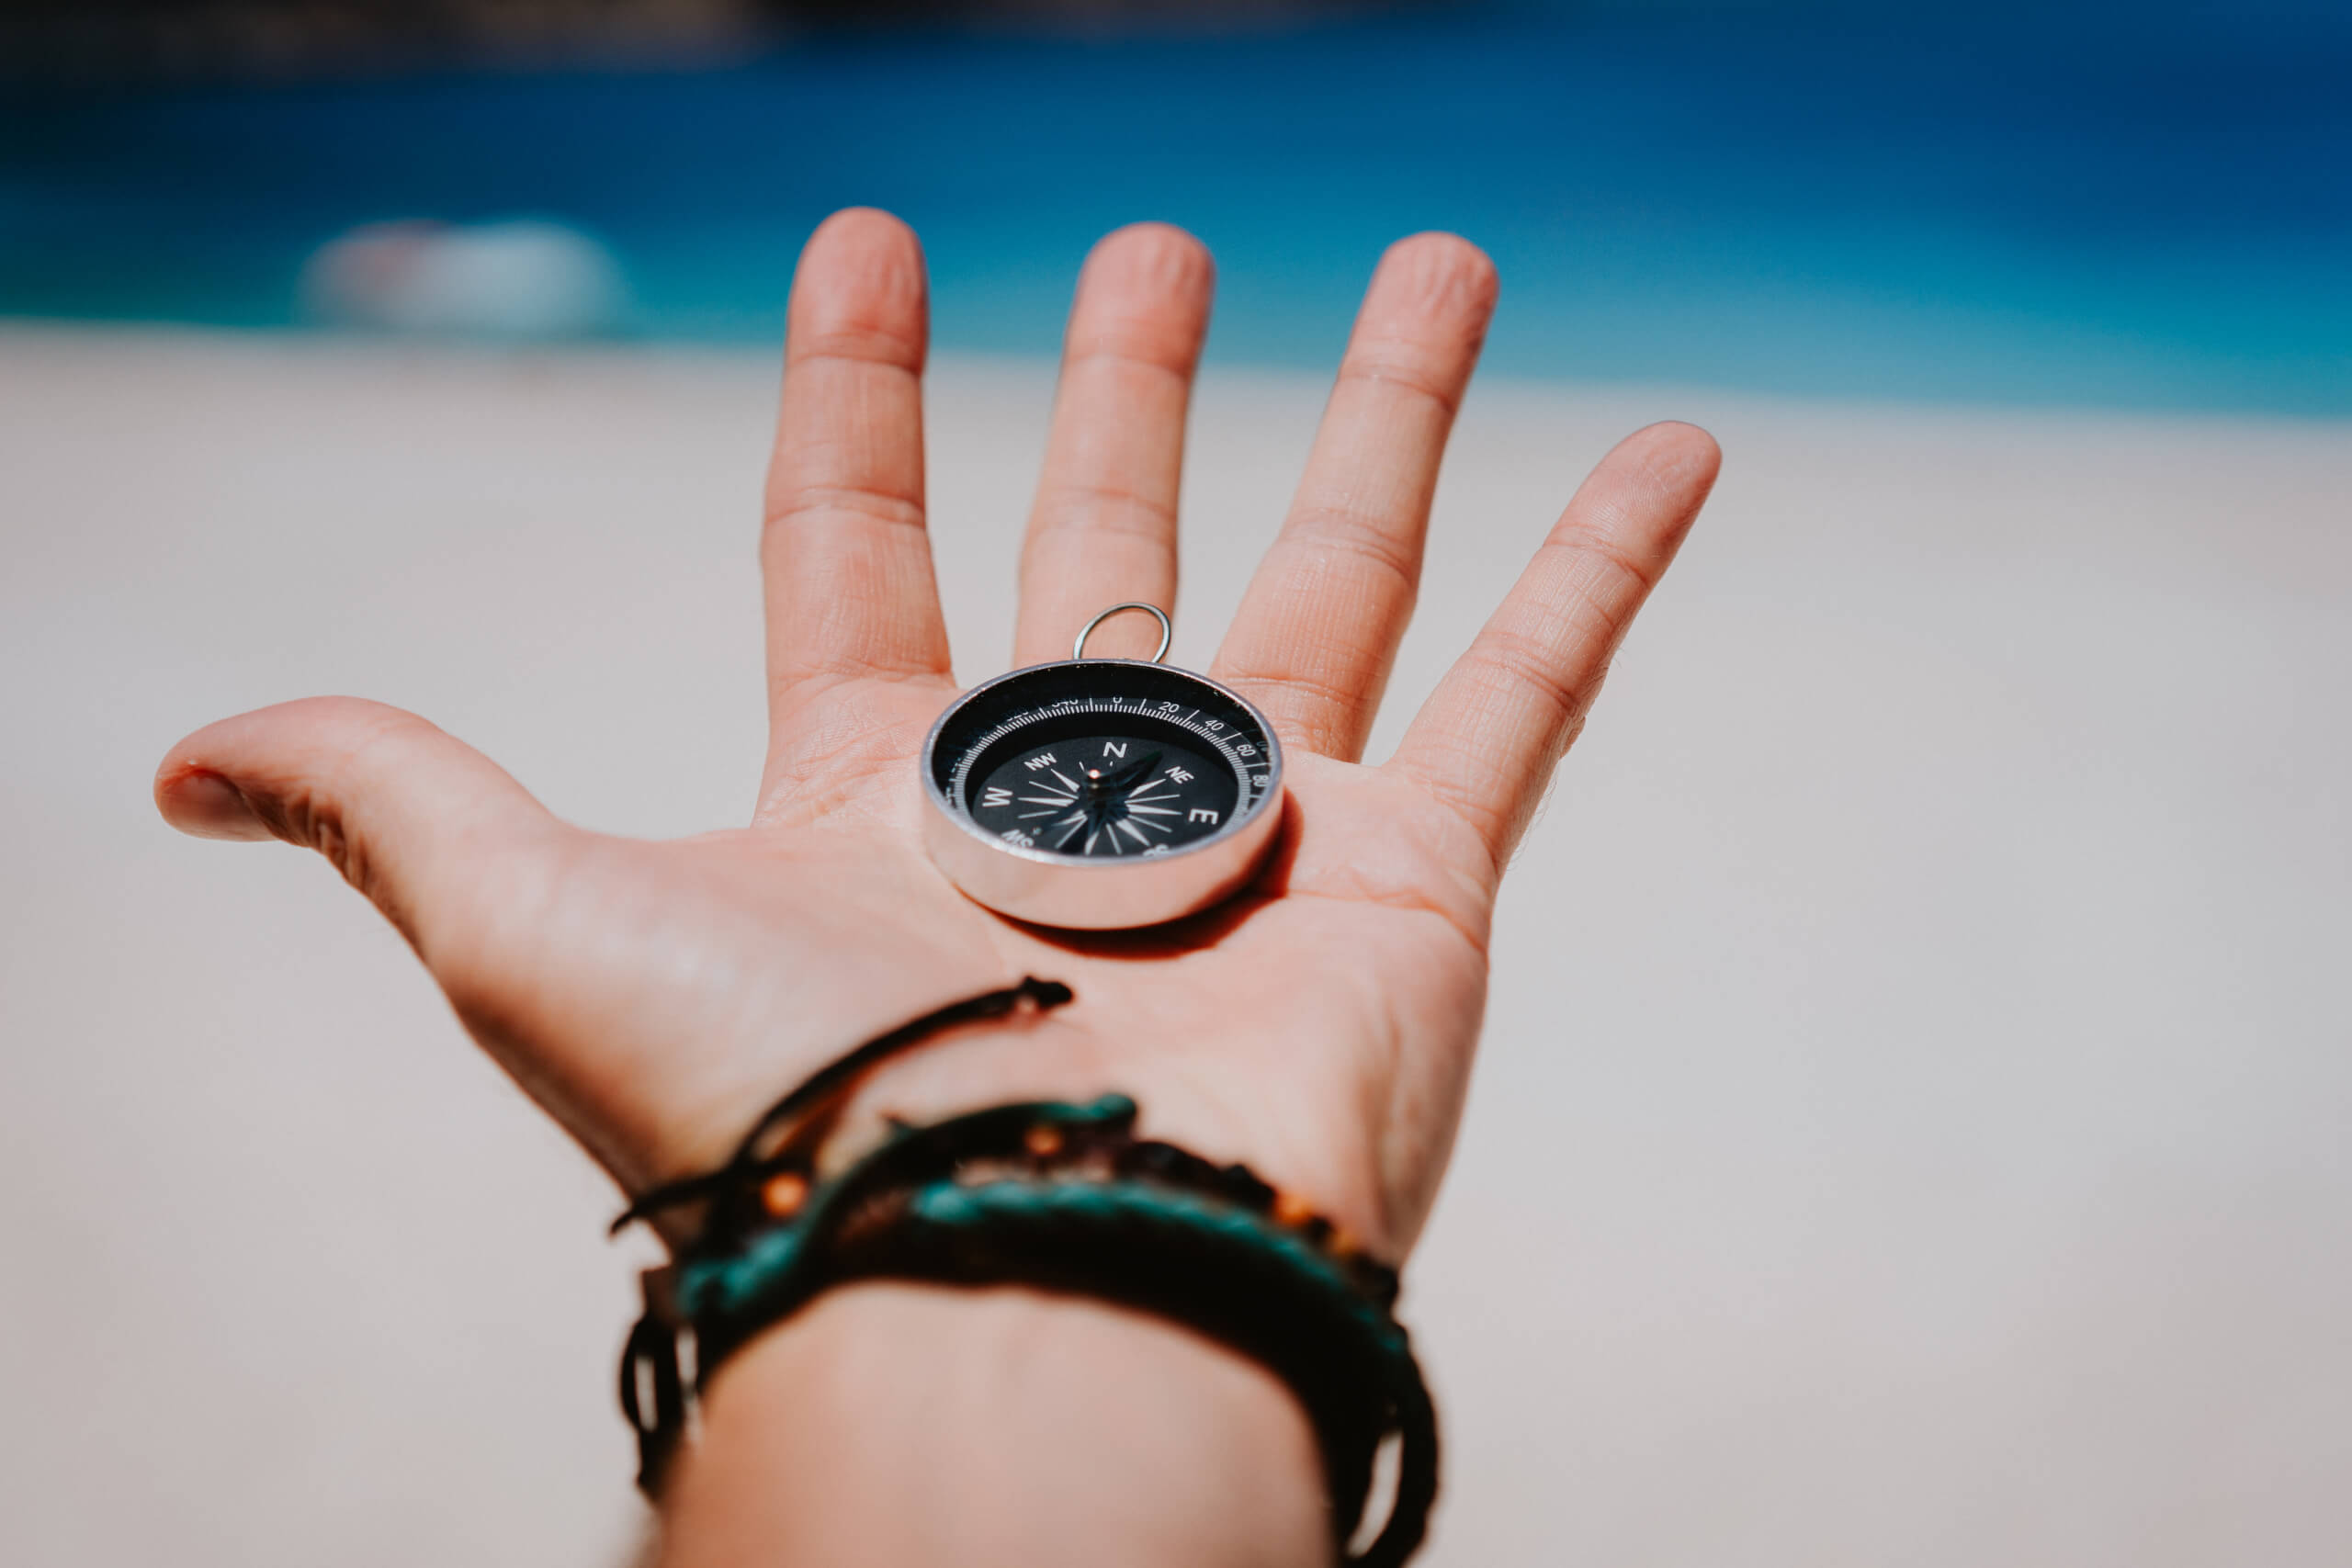 Opfer storyblocks open palm with stretched fingers holding black metal compass against white sandy beach find your way or goal concept point of view pov BeDK9JySX